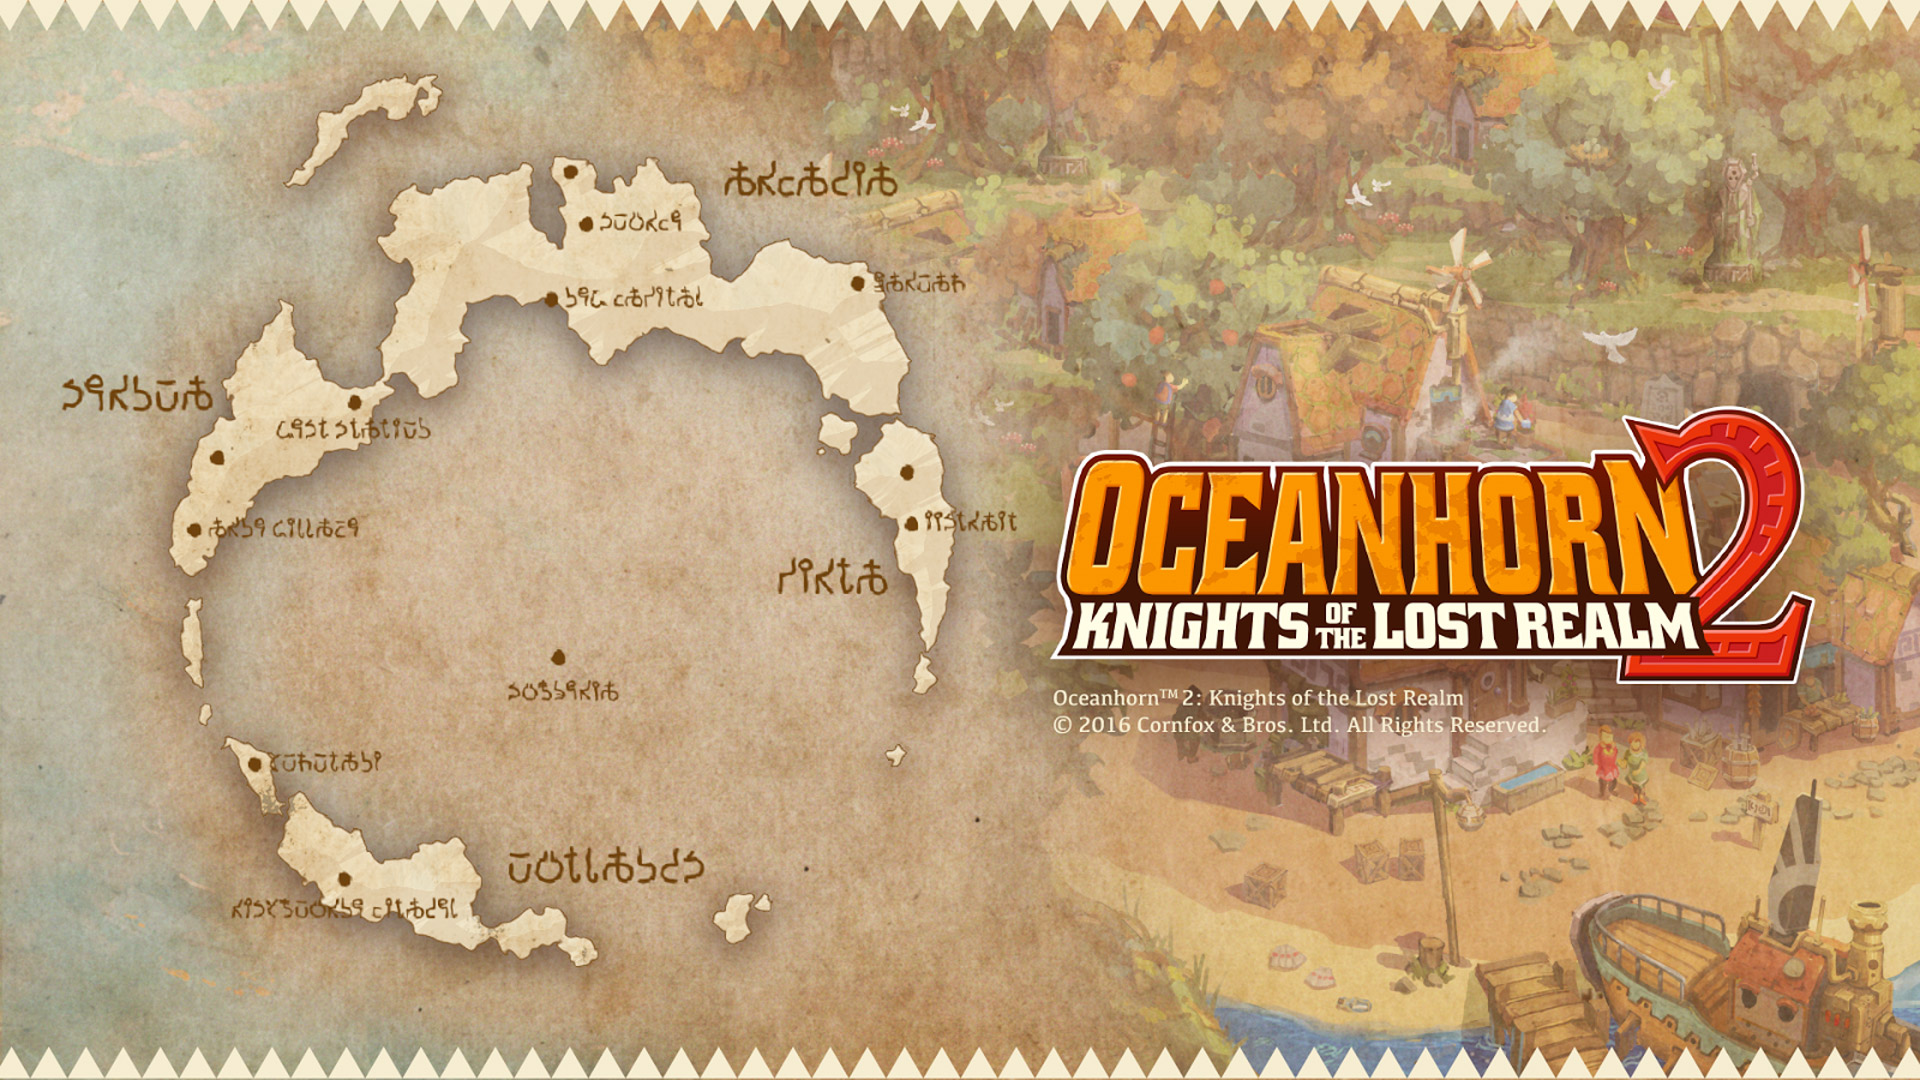 Oceanhorn 2: Knights of The Lost Realm Wallpaper in 1920x1080